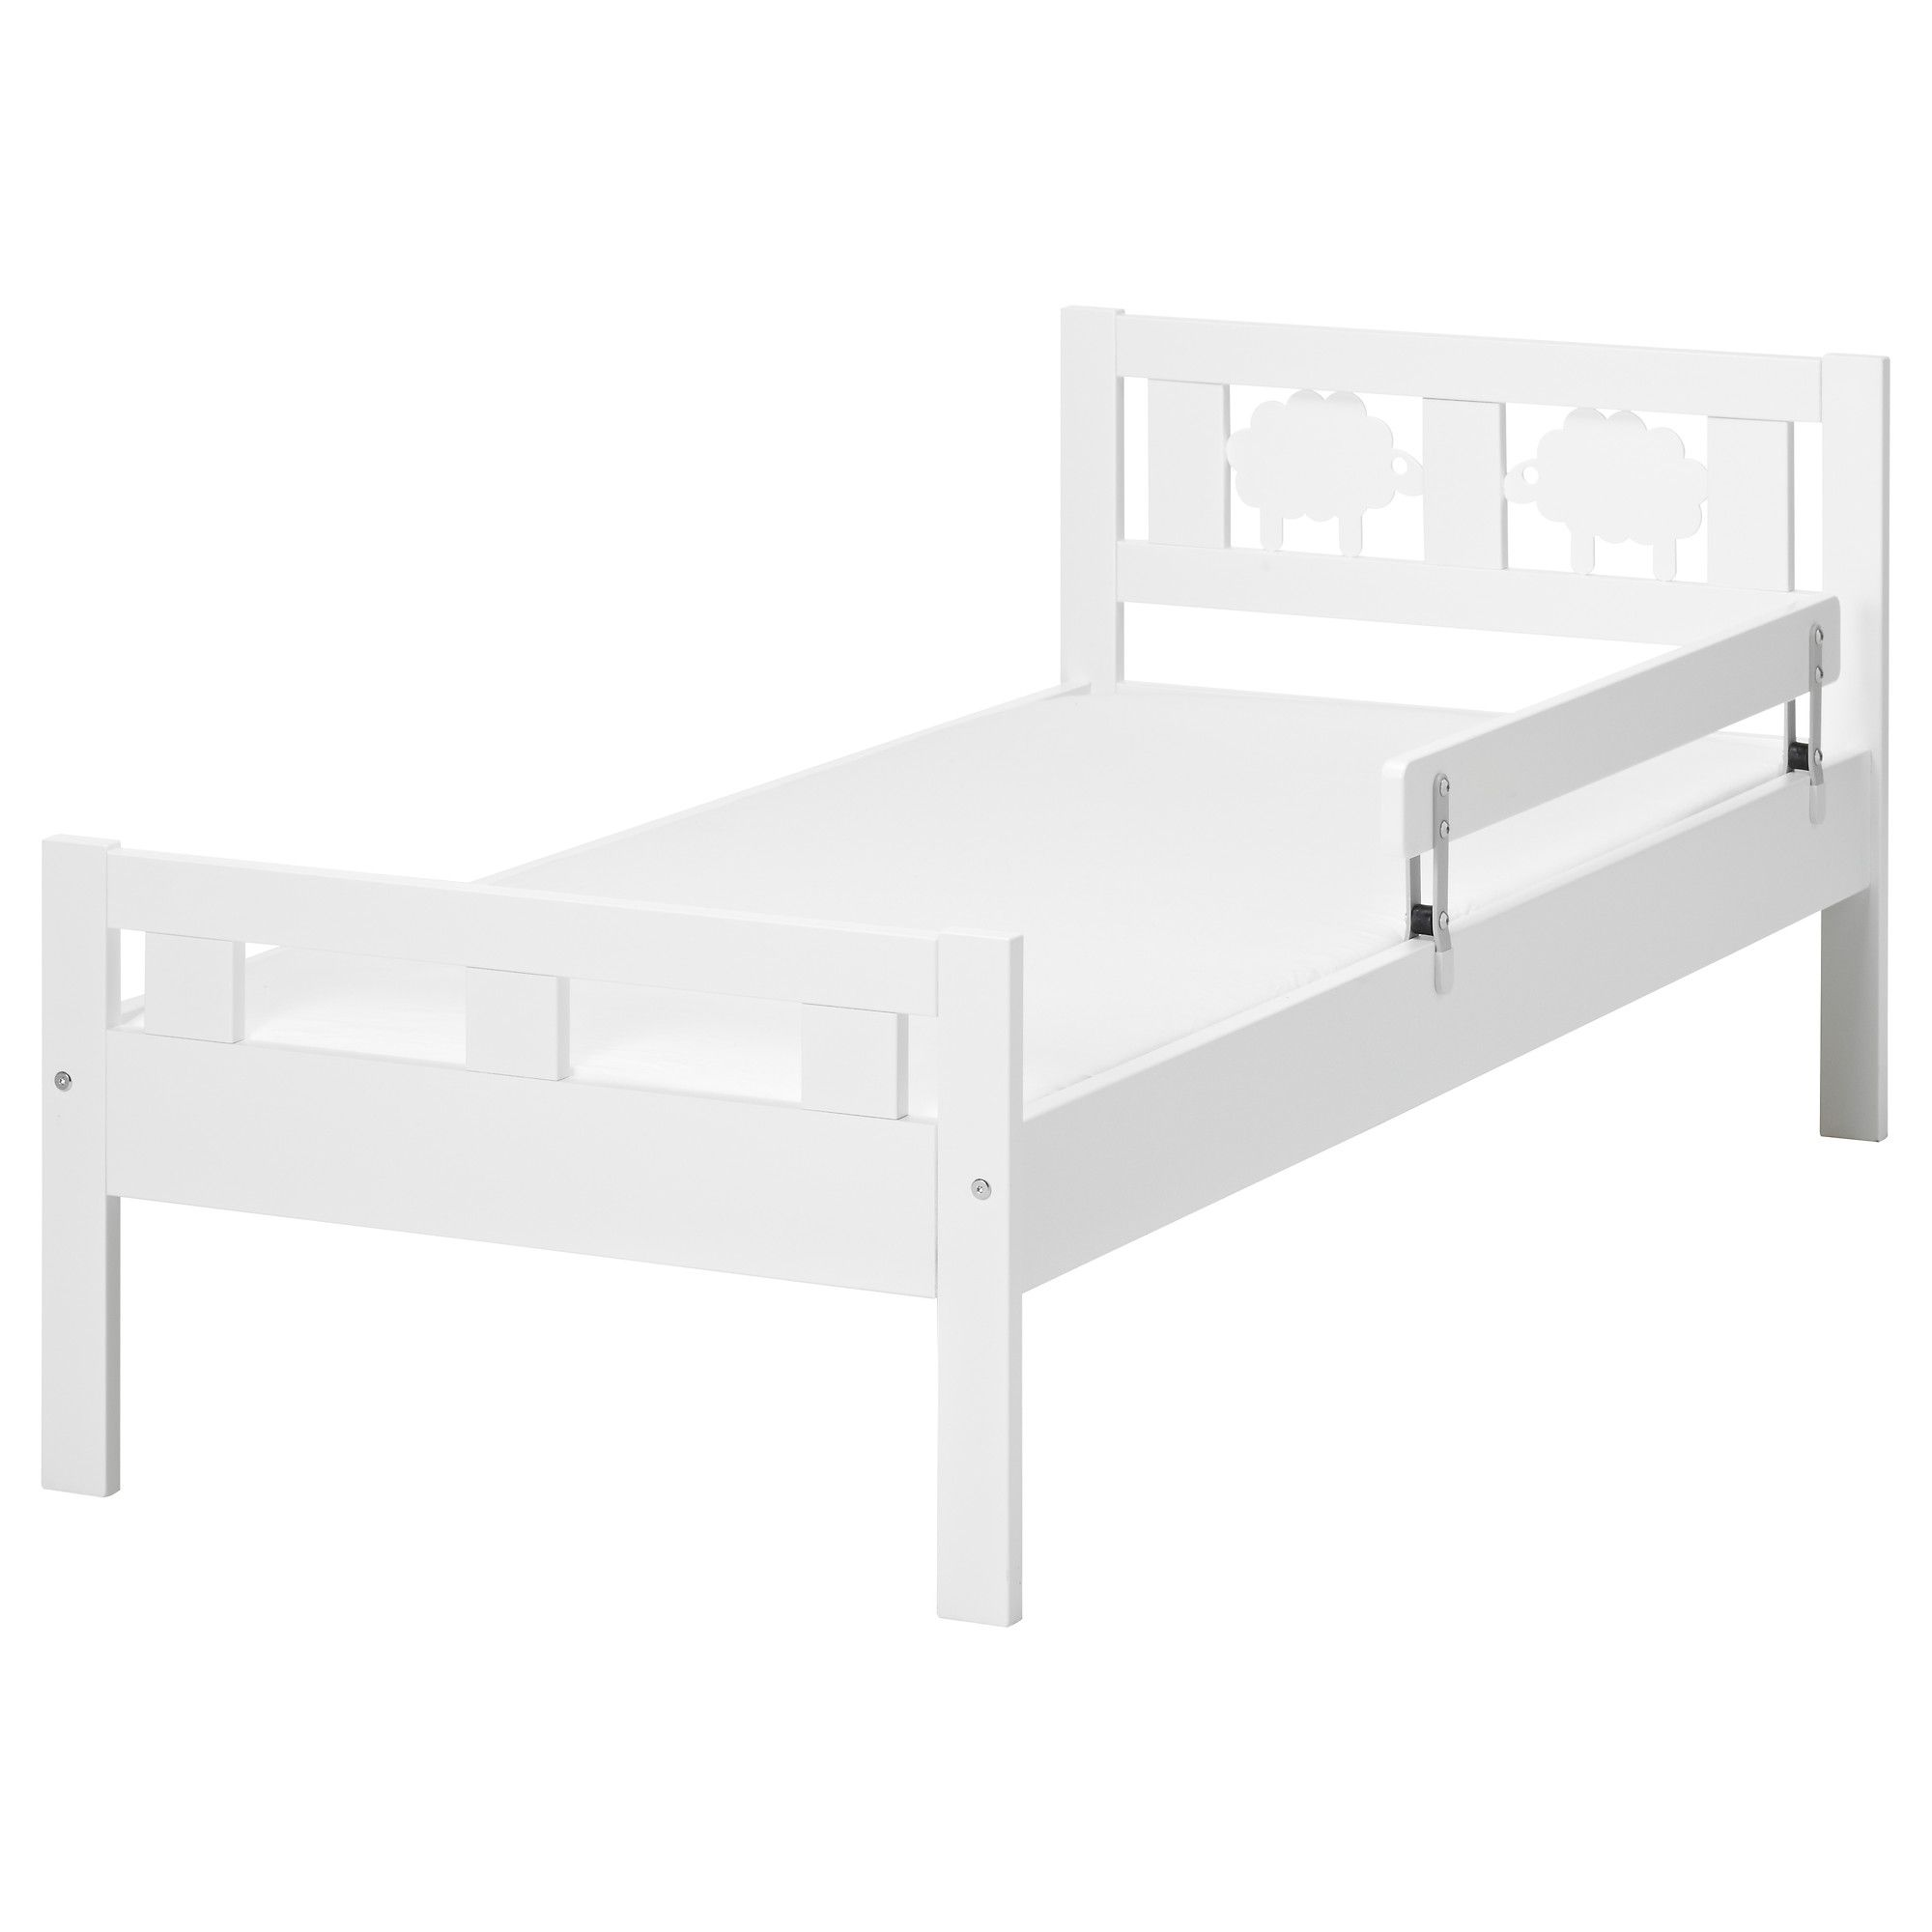 Chloe s Bed KRITTER Bed frame with slatted bed base white IKEA